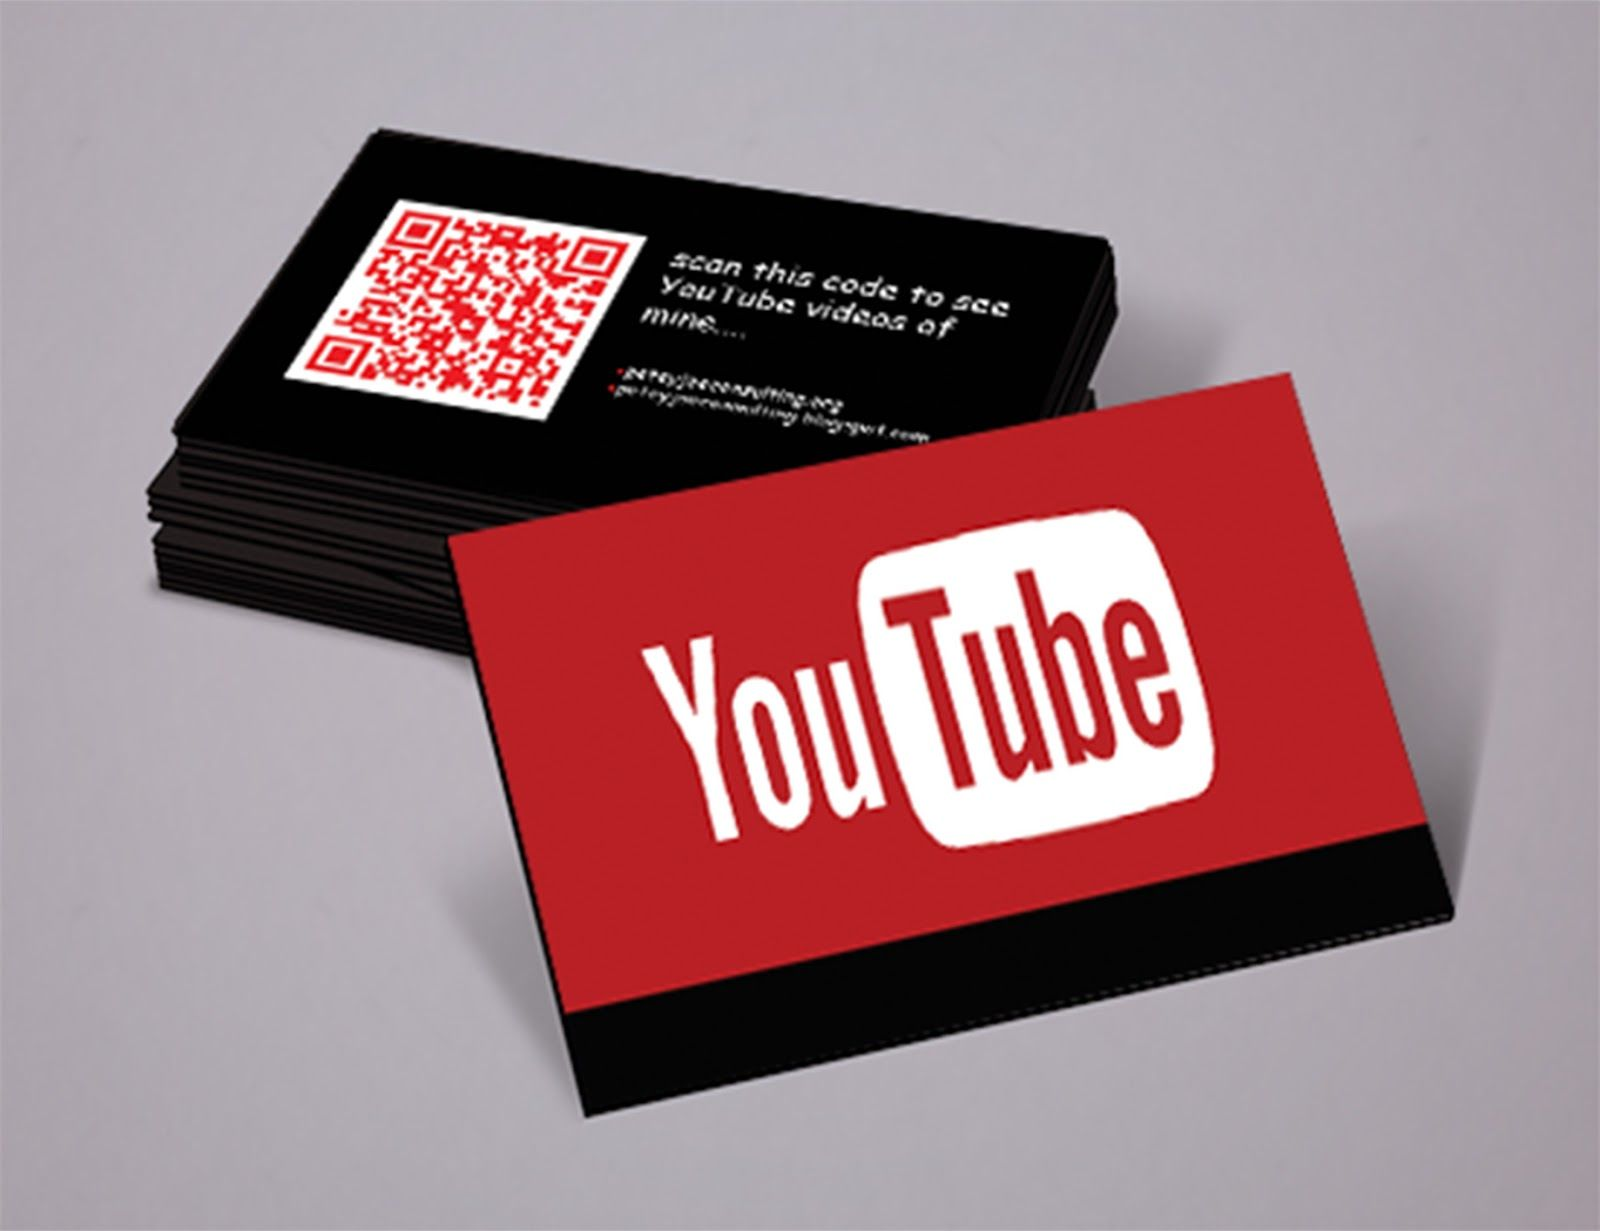 Awesome Business Cards | Business Cards | Pinterest | Awesome ...